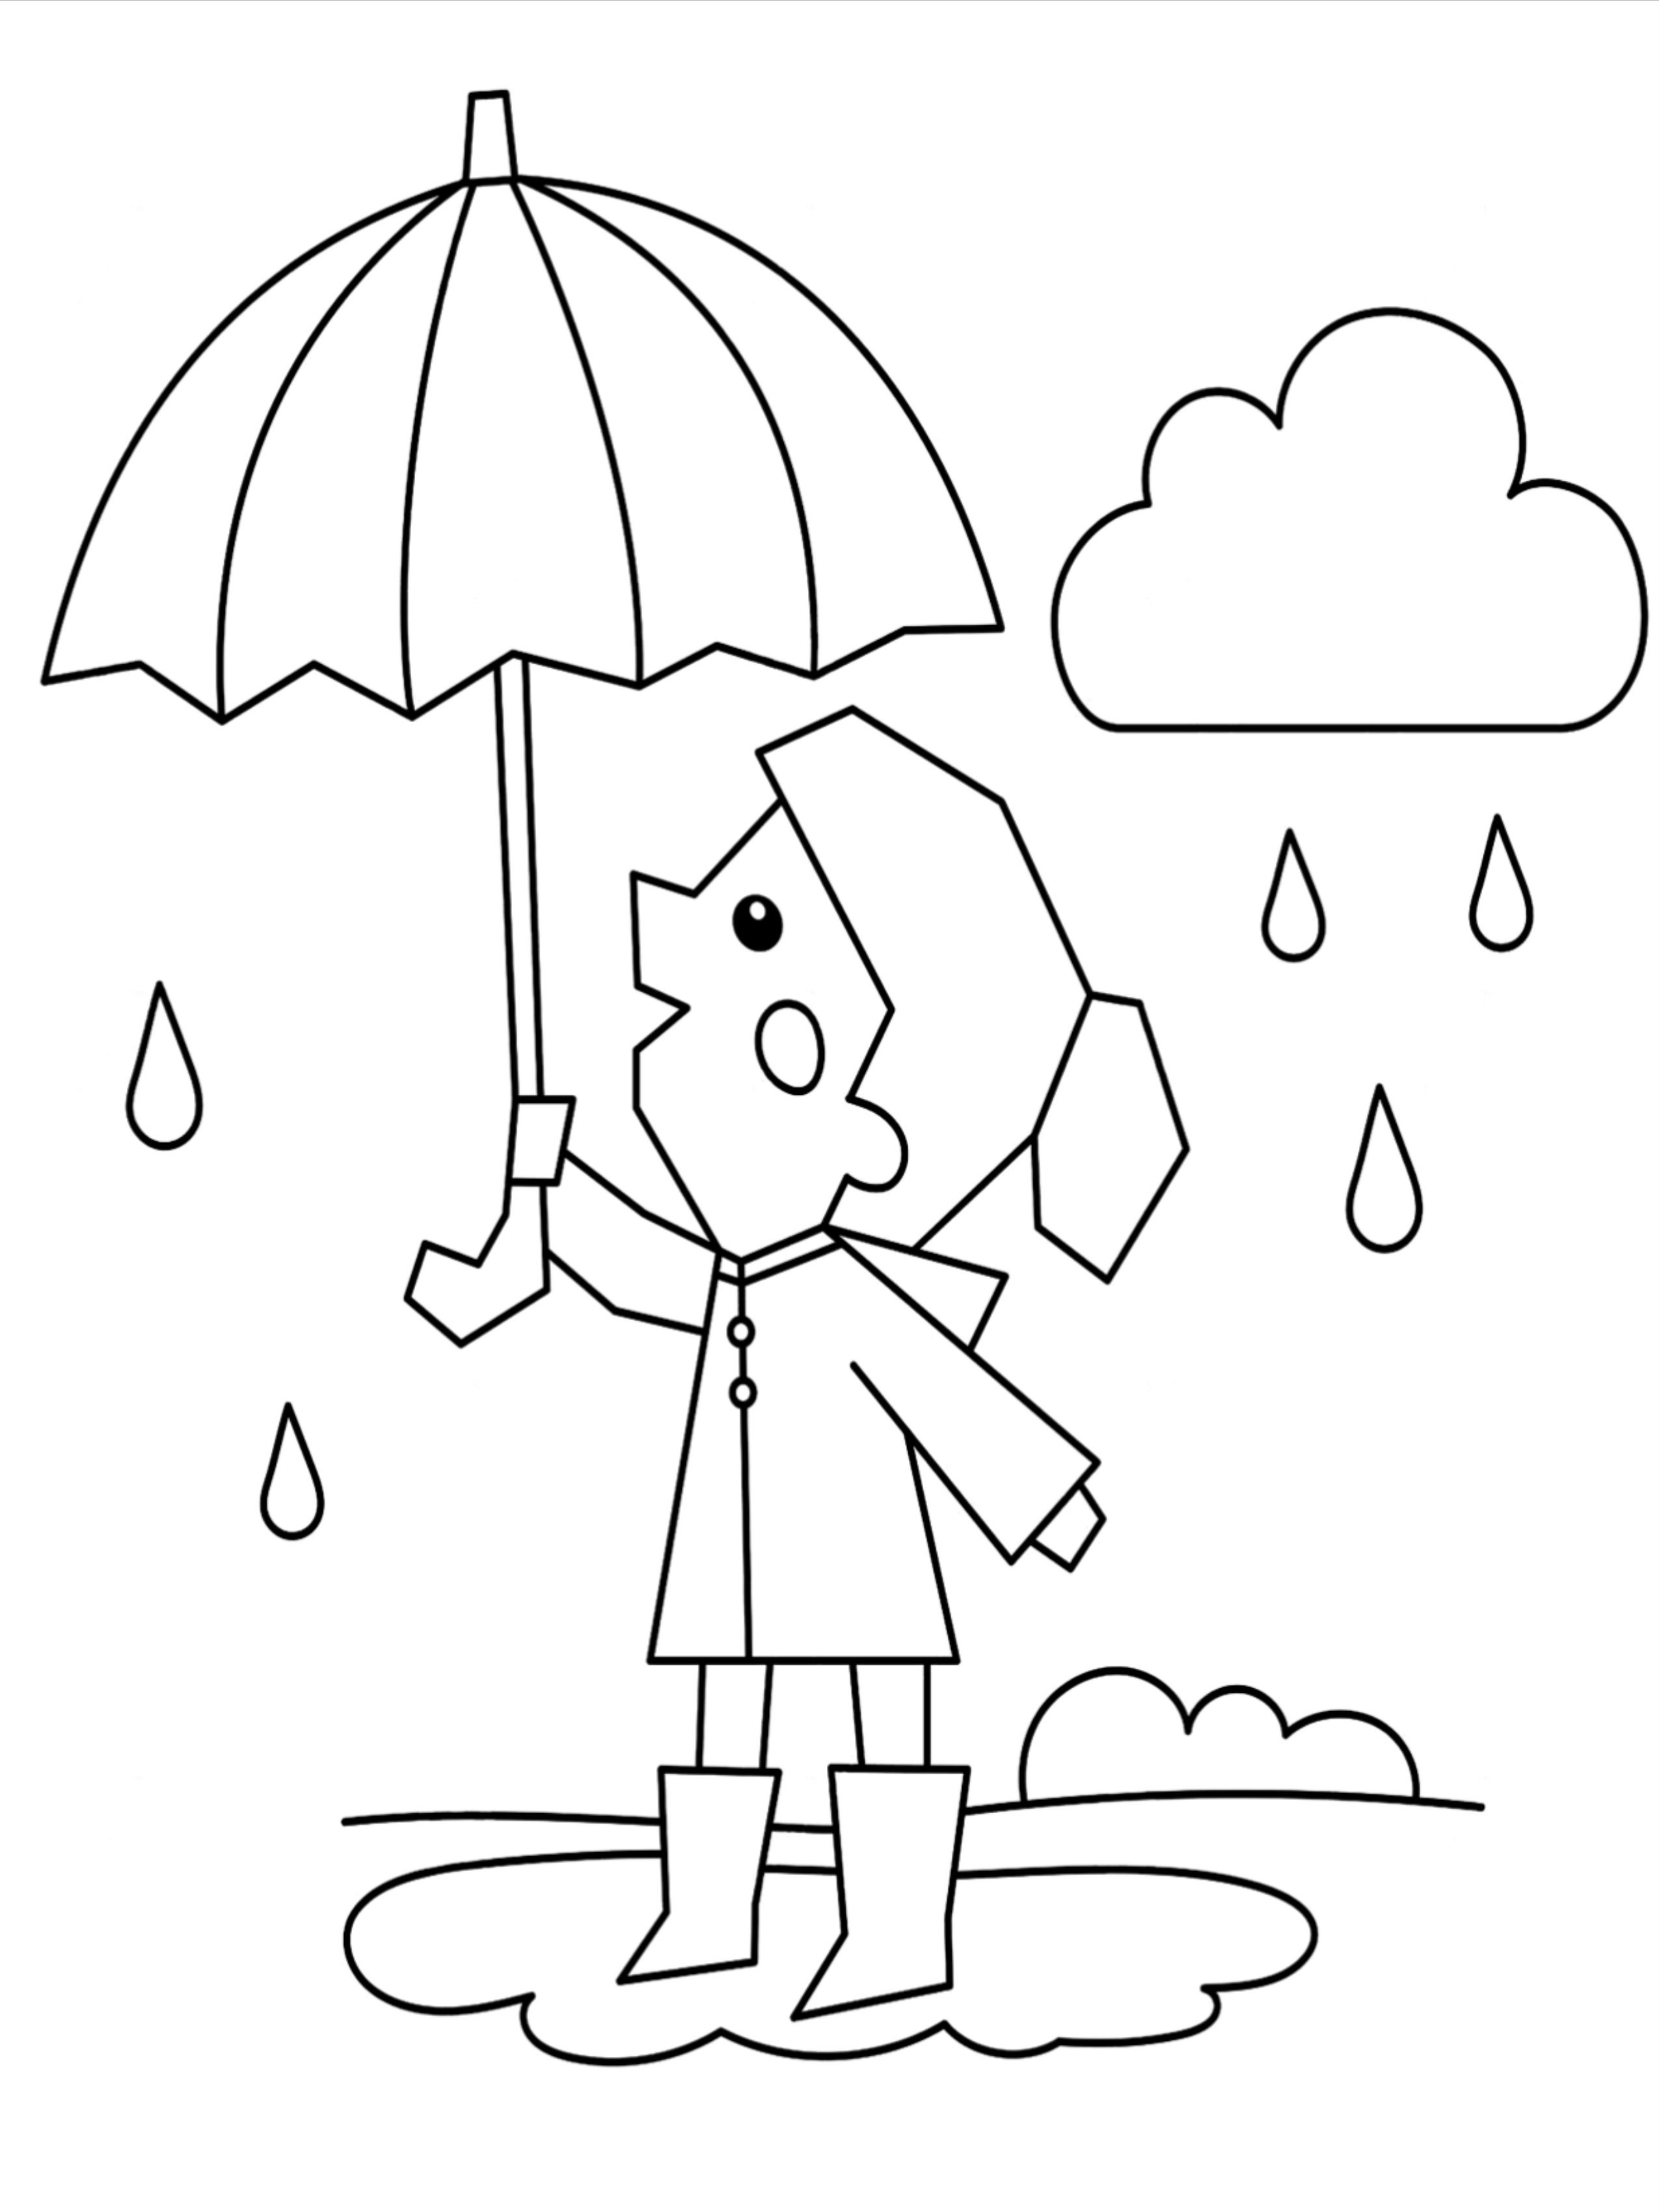 50 Weather Coloring Pages For Kids